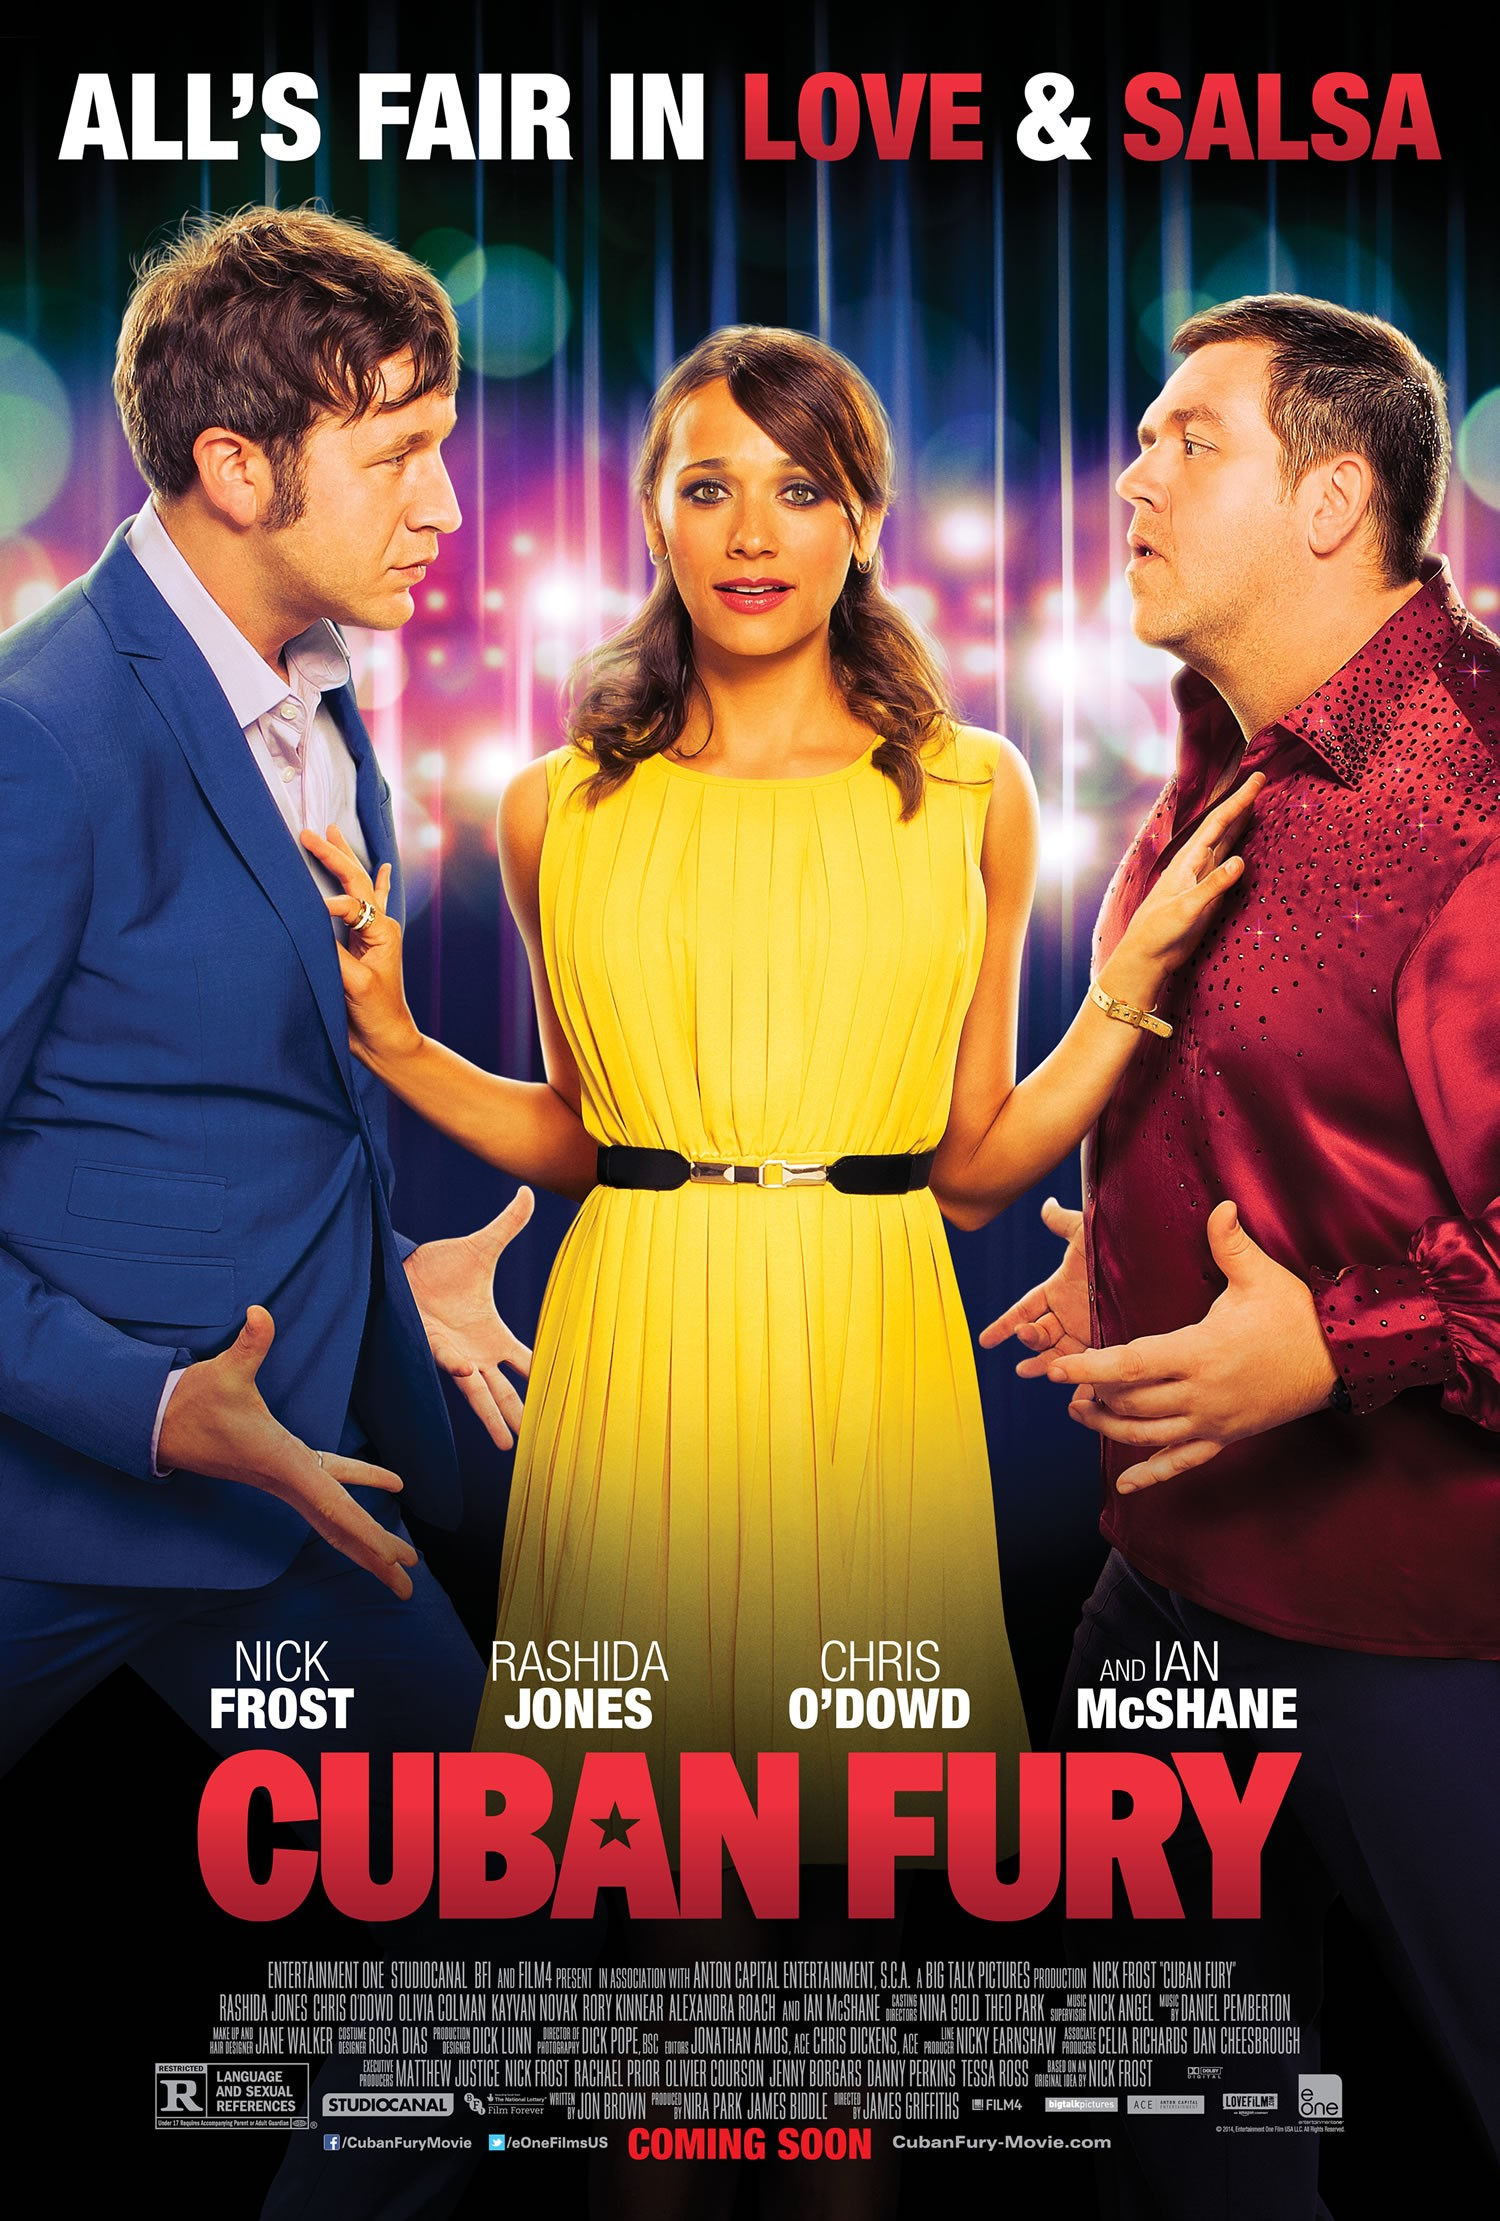 Cuban Fury-Official Poster Banner PROMO XXLG-26MARCO2014